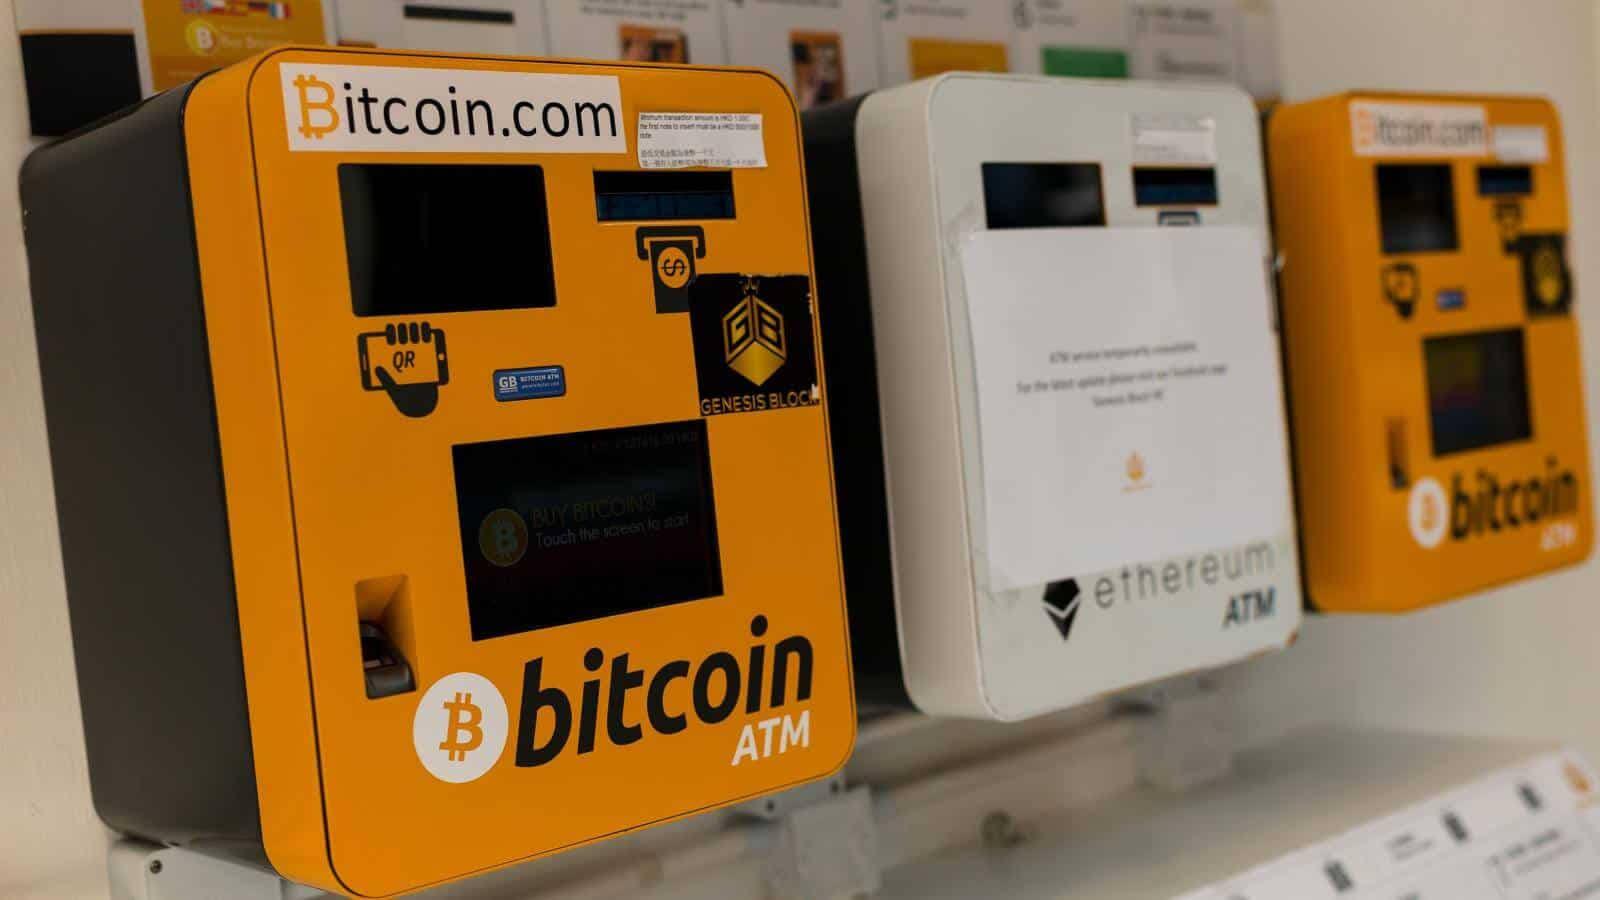 Bitcoin Depot Claims to Add 500 Bitcoin ATMs on Its Network